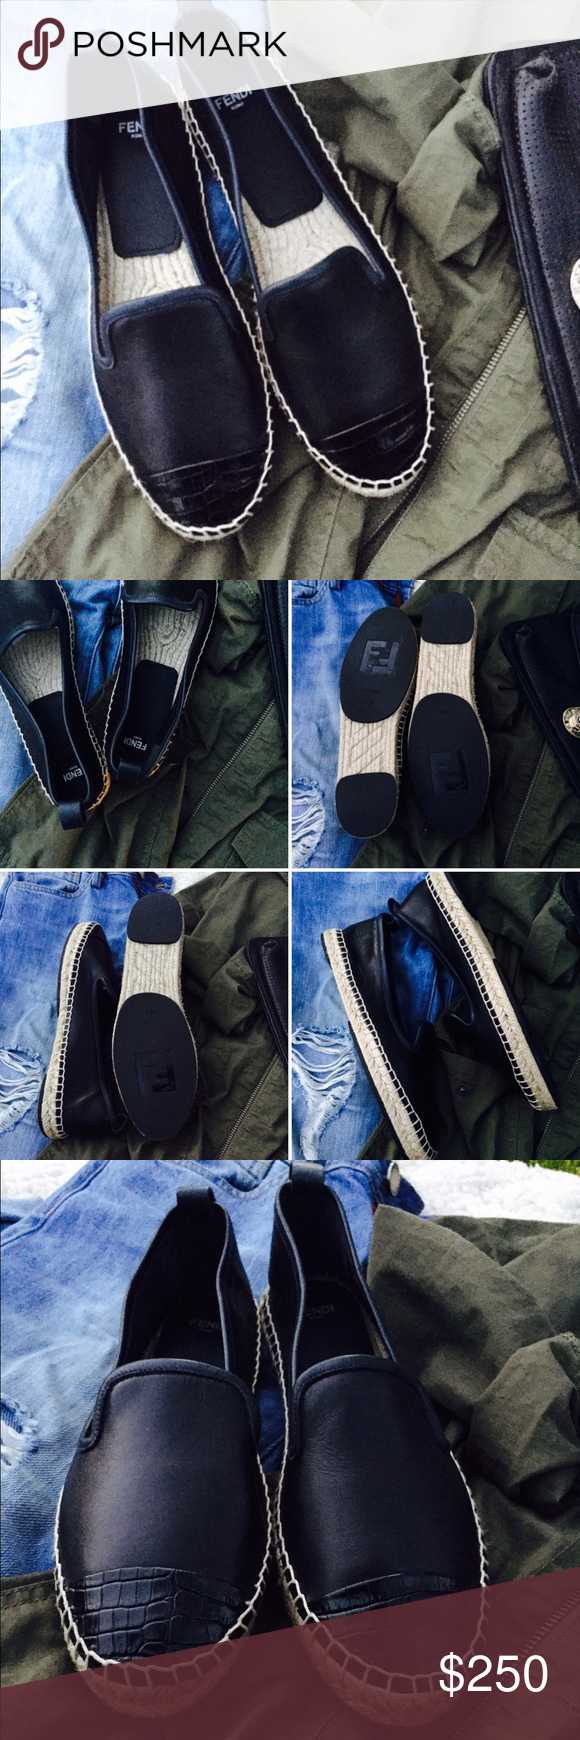 NWOT 💯Authentic Fendi Leather Flats Fendi croc-embossed cap-toe flat espadrilles. These flats a dark navy leather with an oxford feel and cap-toe detail. Pair with skinny jeans, leather pants or shorts for a finishing touch. These are brand new, never worn but no shoes box or bag with them. These are EU 39.5 which is 9.5 but fit more like a 9. Fendi Shoes Flats & Loafers